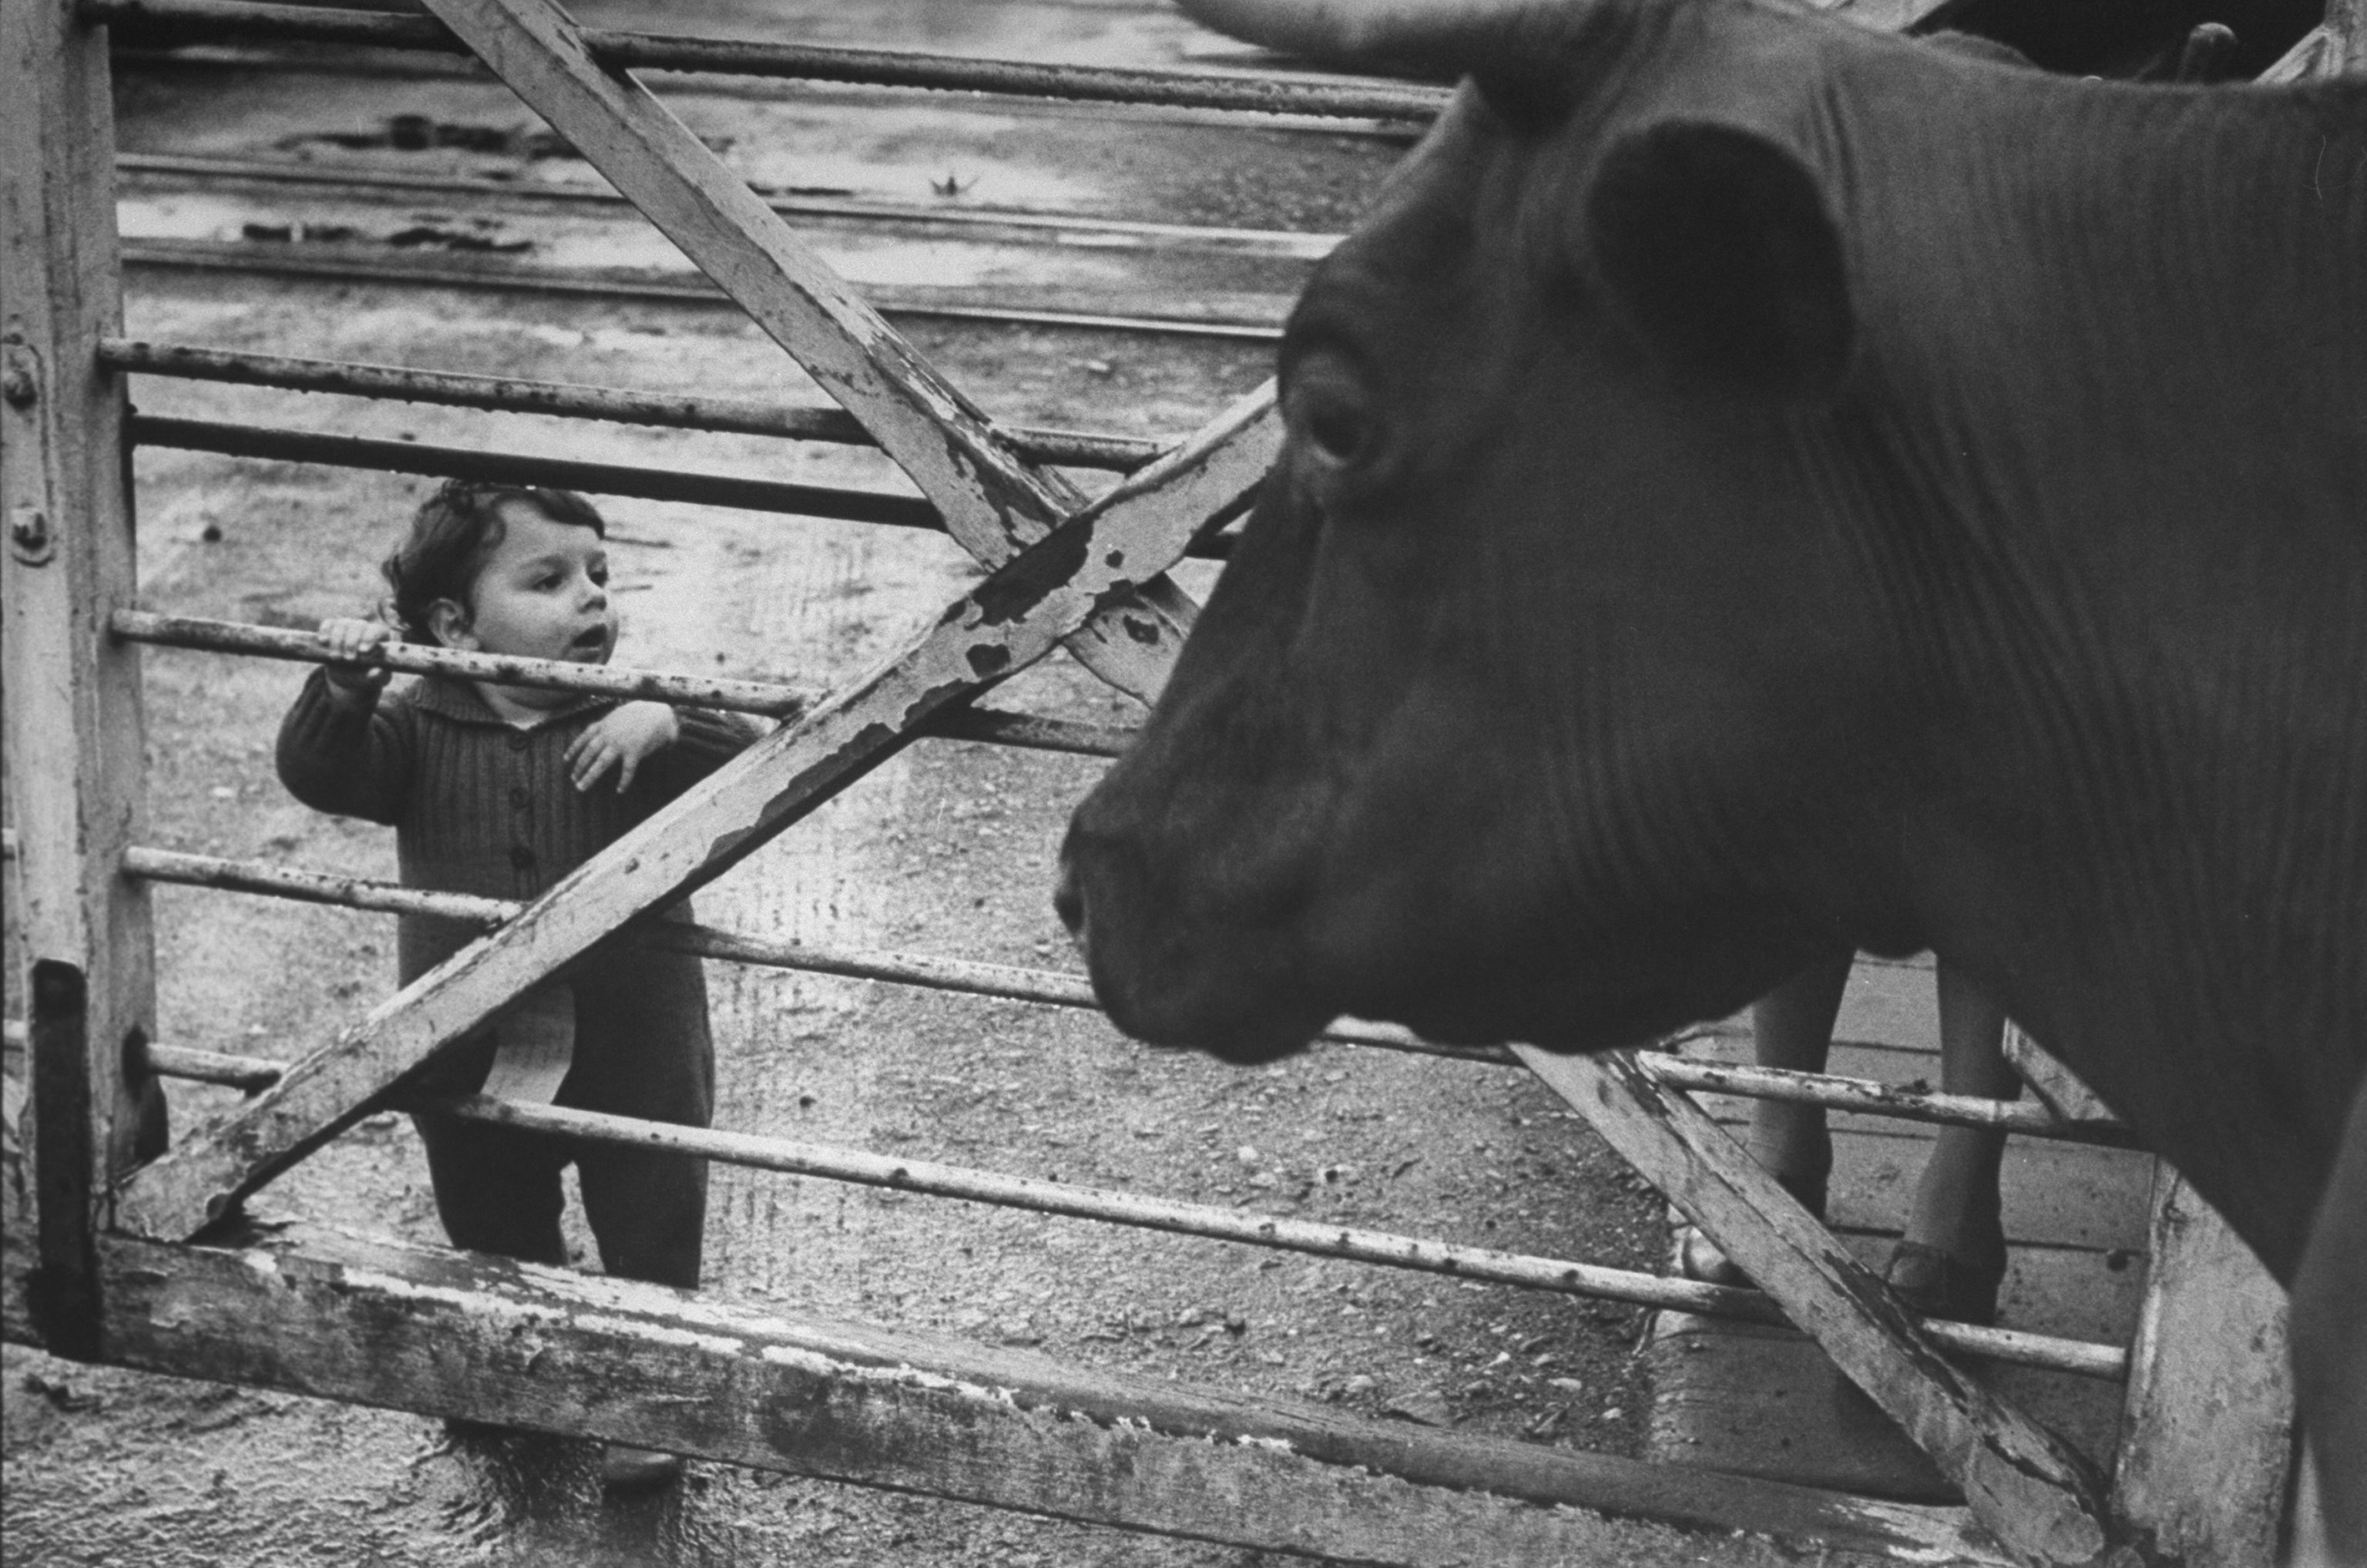 Boy looking at a cow in London. (Photo by Ian Smith/The LIFE Picture Collection © Meredith Corporation)